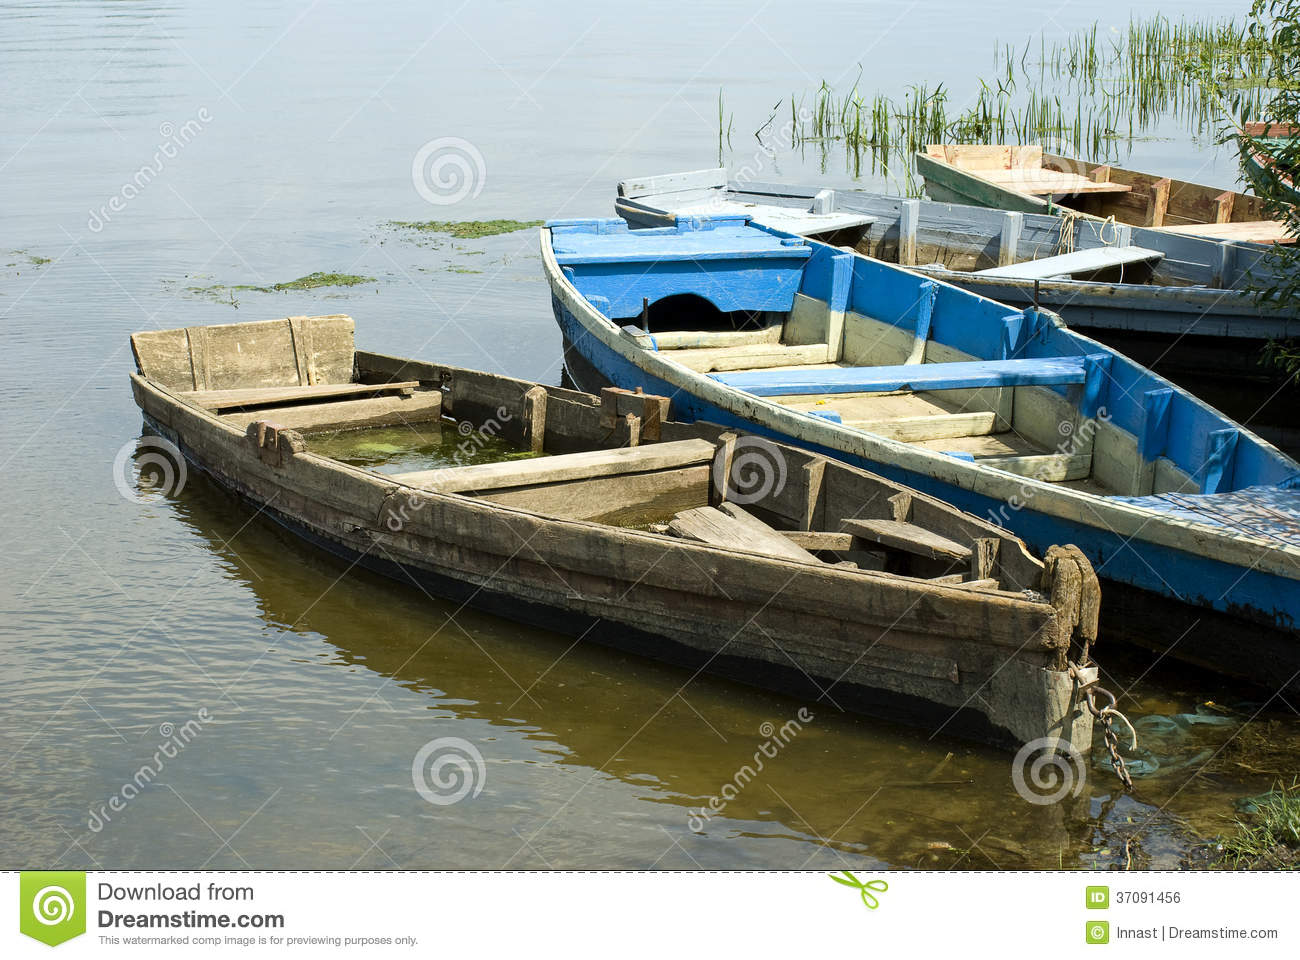 Old Boats Royalty Free Stock Image - Image: 37091456